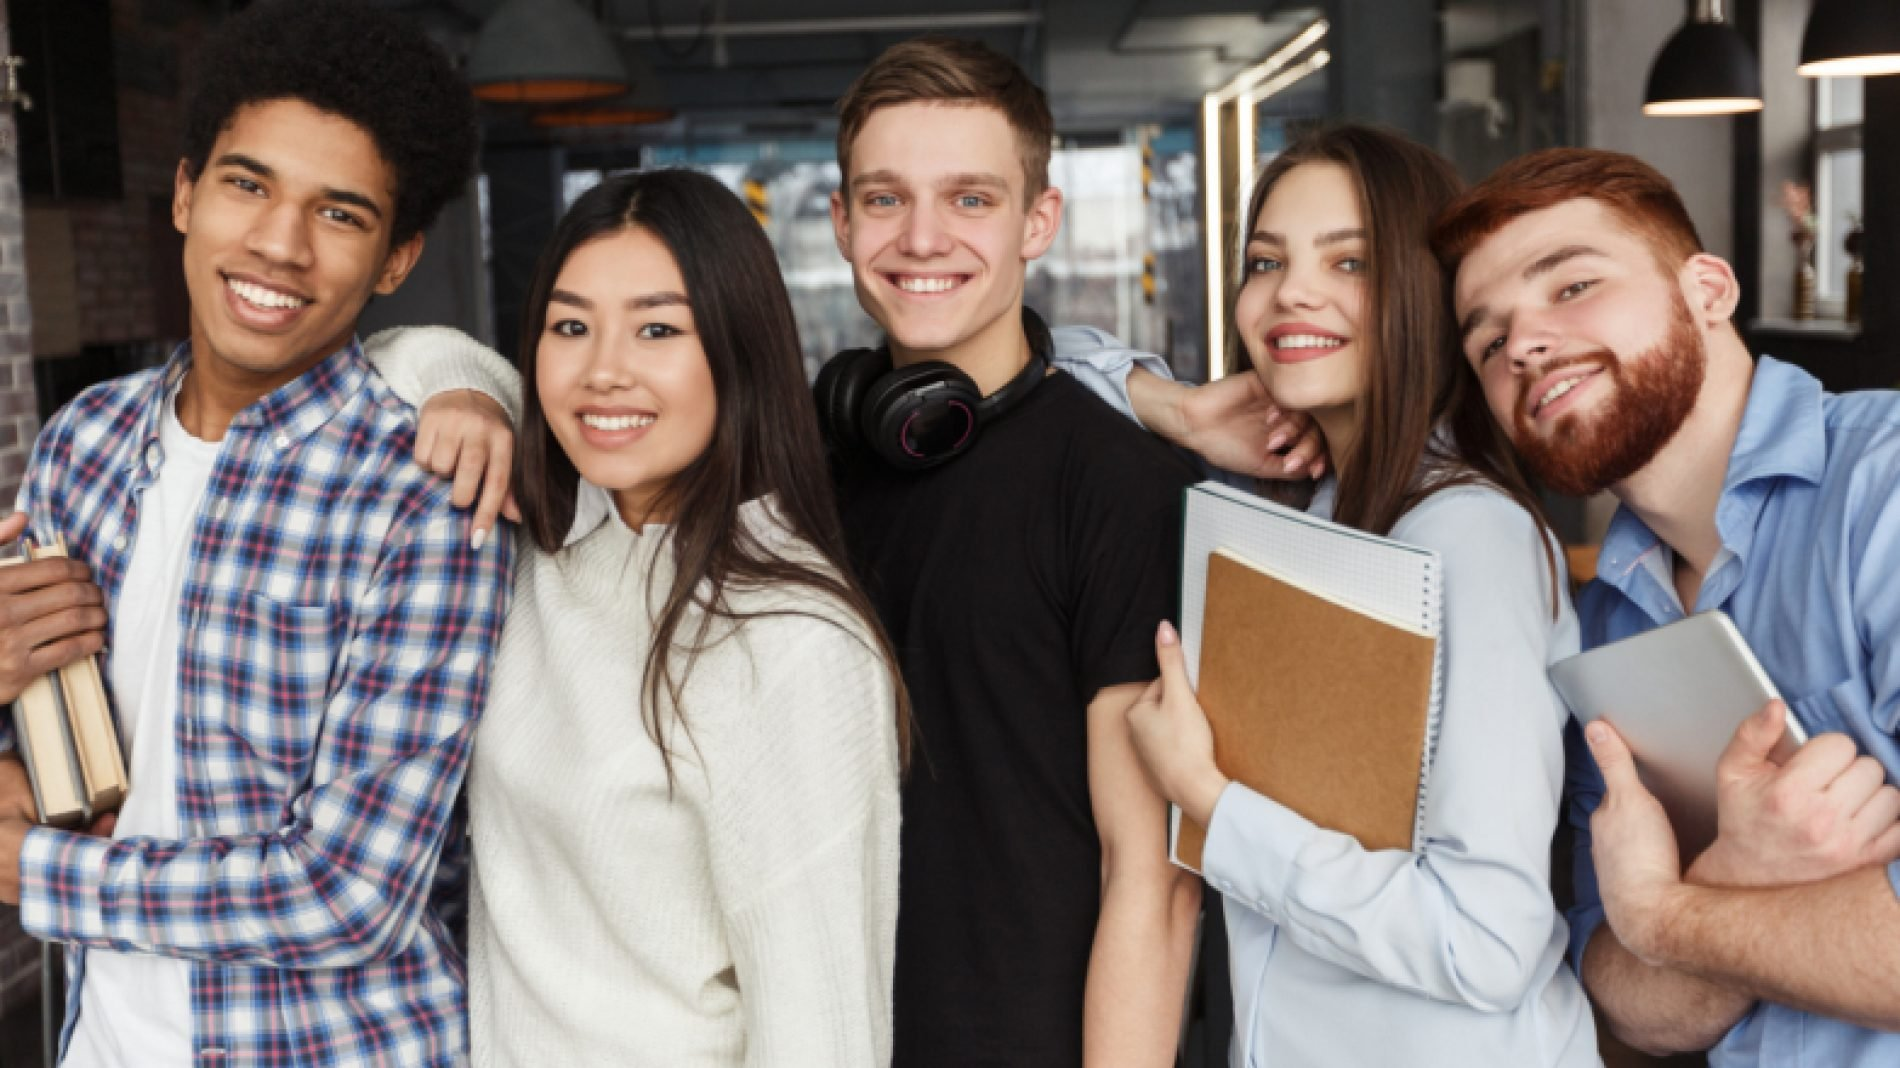 Group-of-young-people-with-notebooks-uFI2XC